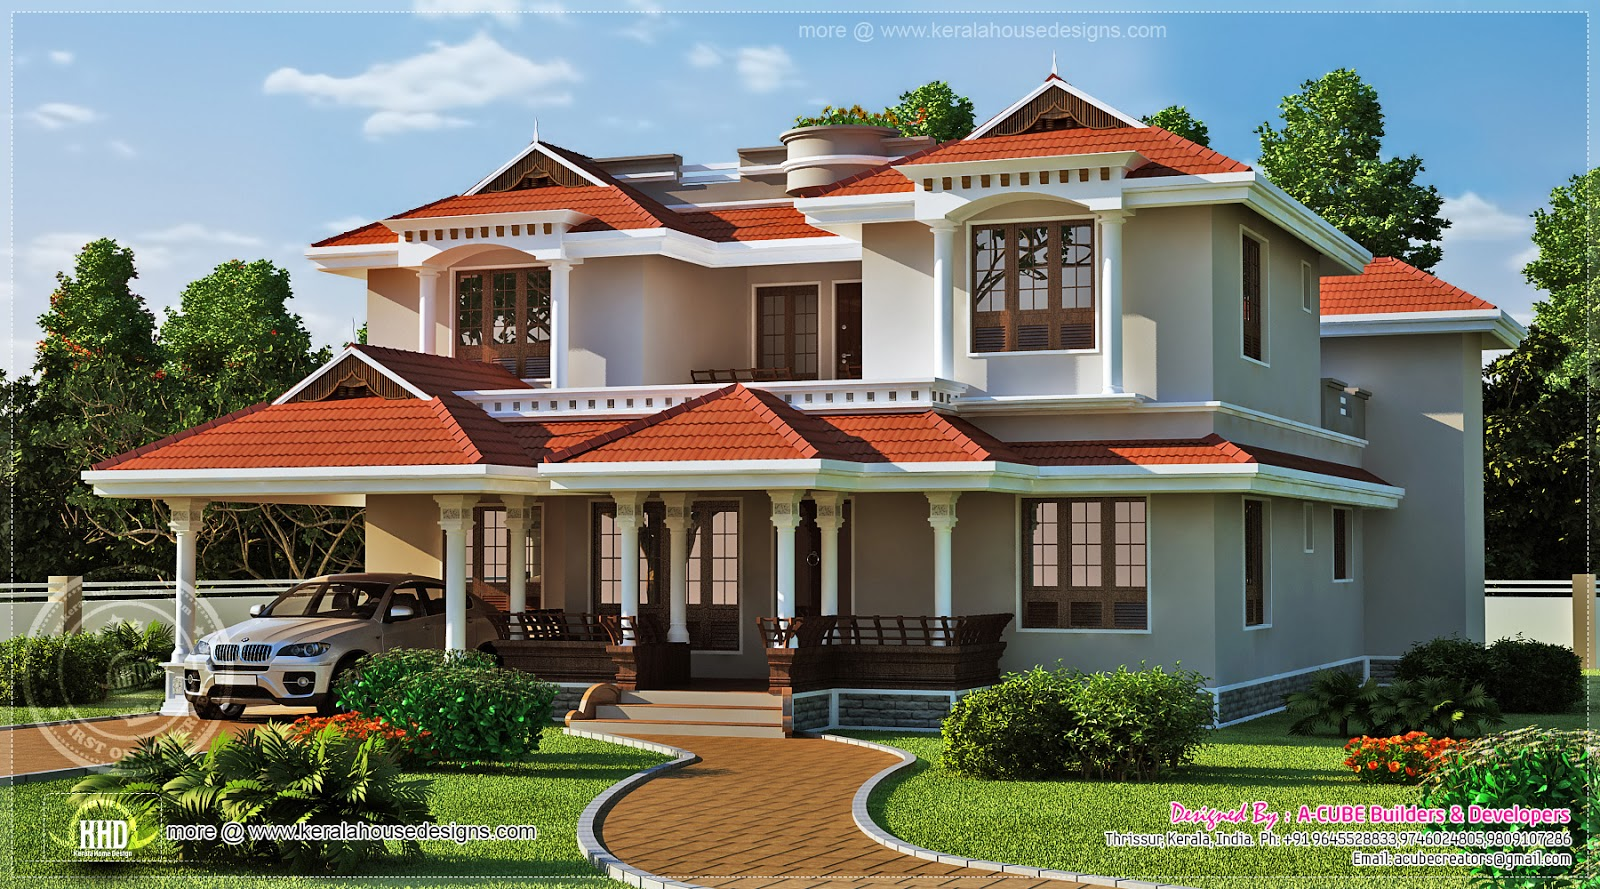 Beautiful home exterior in 2446 square feet house design for Beautiful house designs and plans